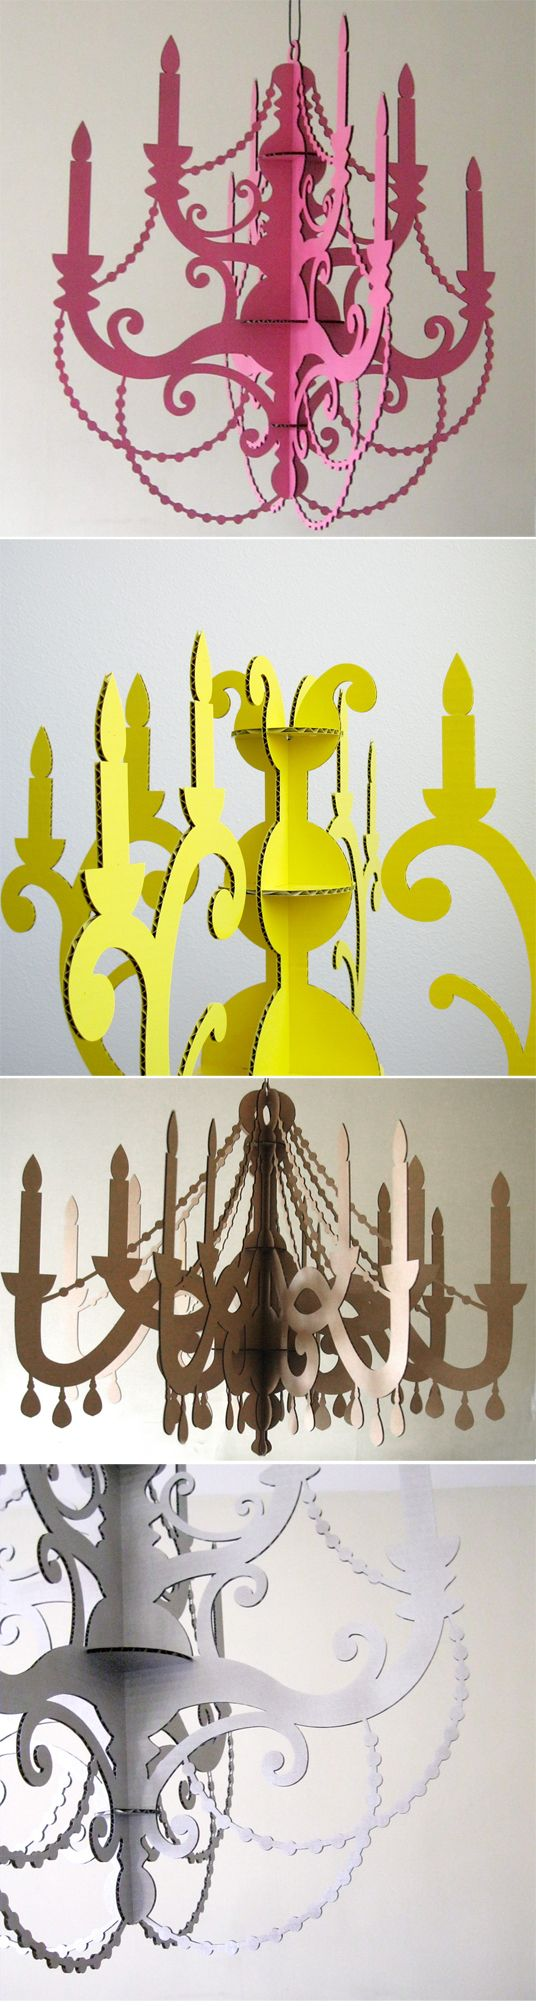 Decorative cardboard lamp. - Lampara de cartón decorativa.